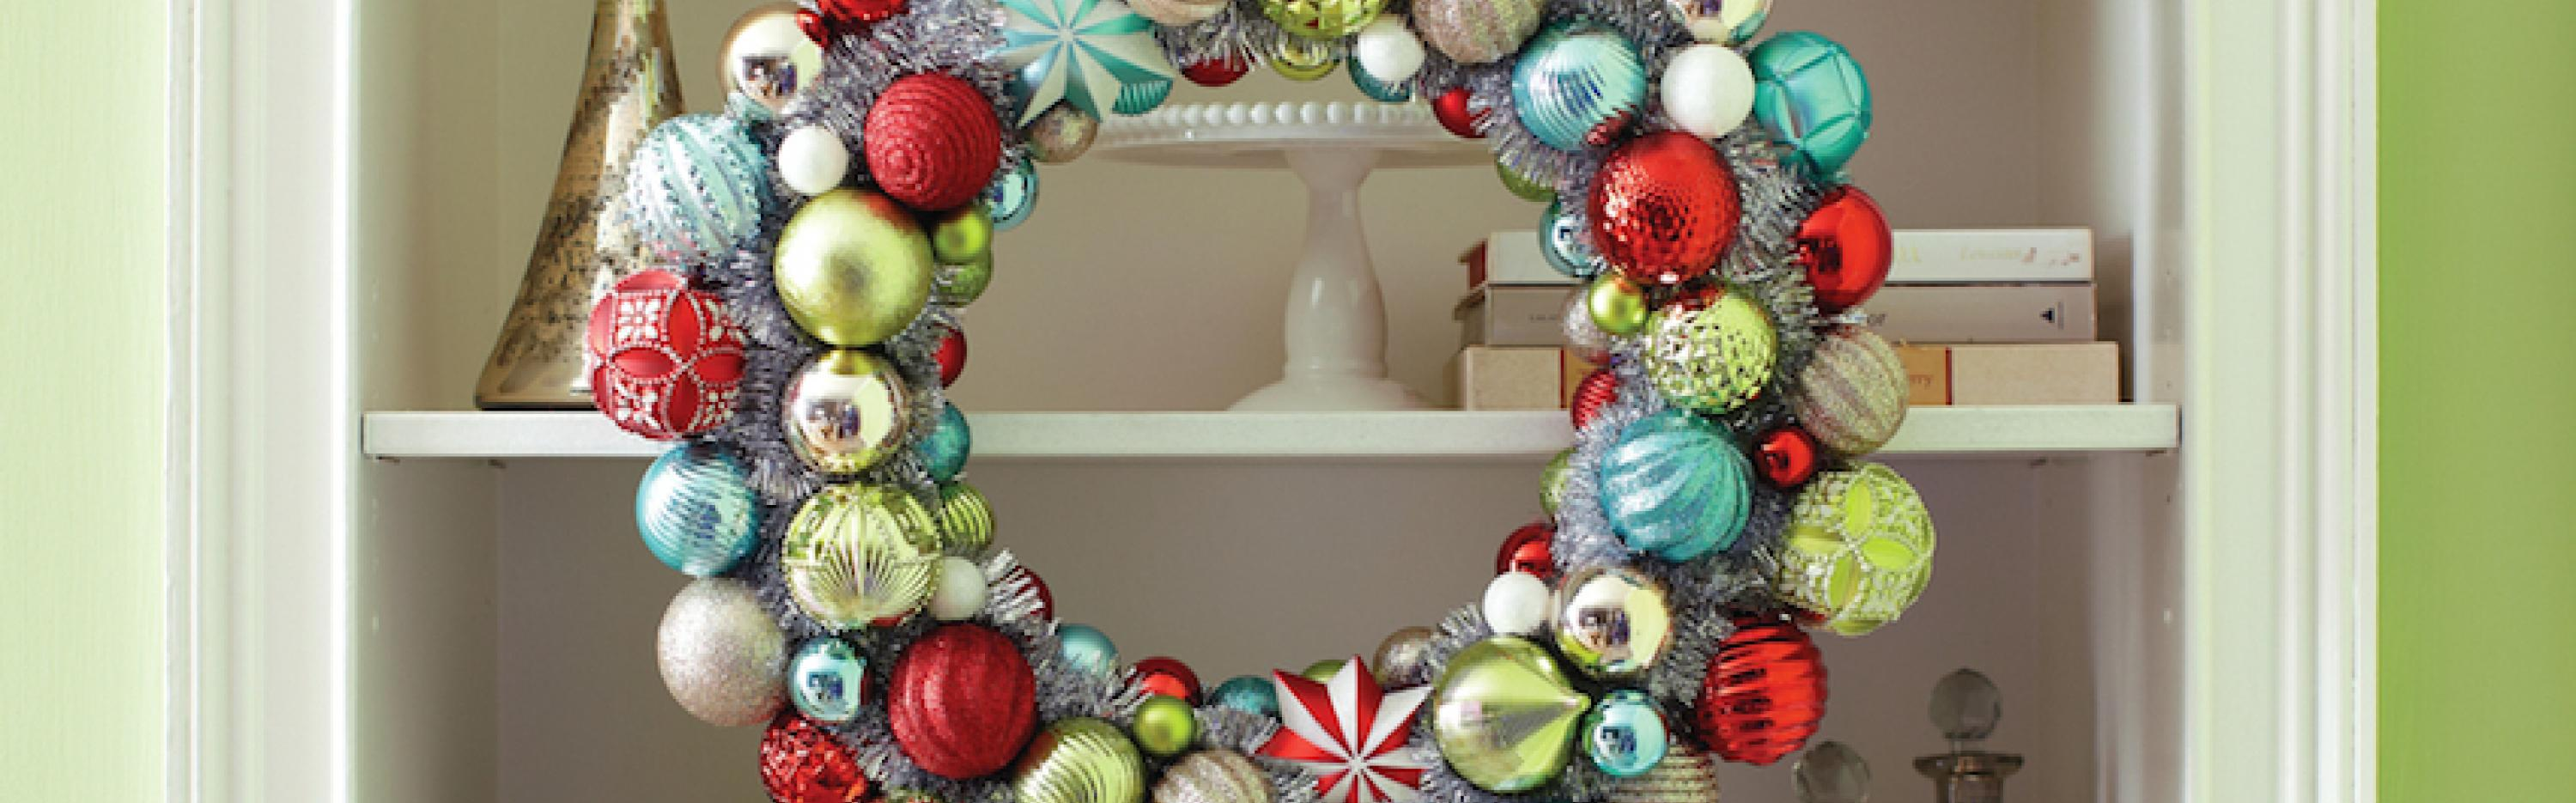 Holiday Frosted Traditions Wreath